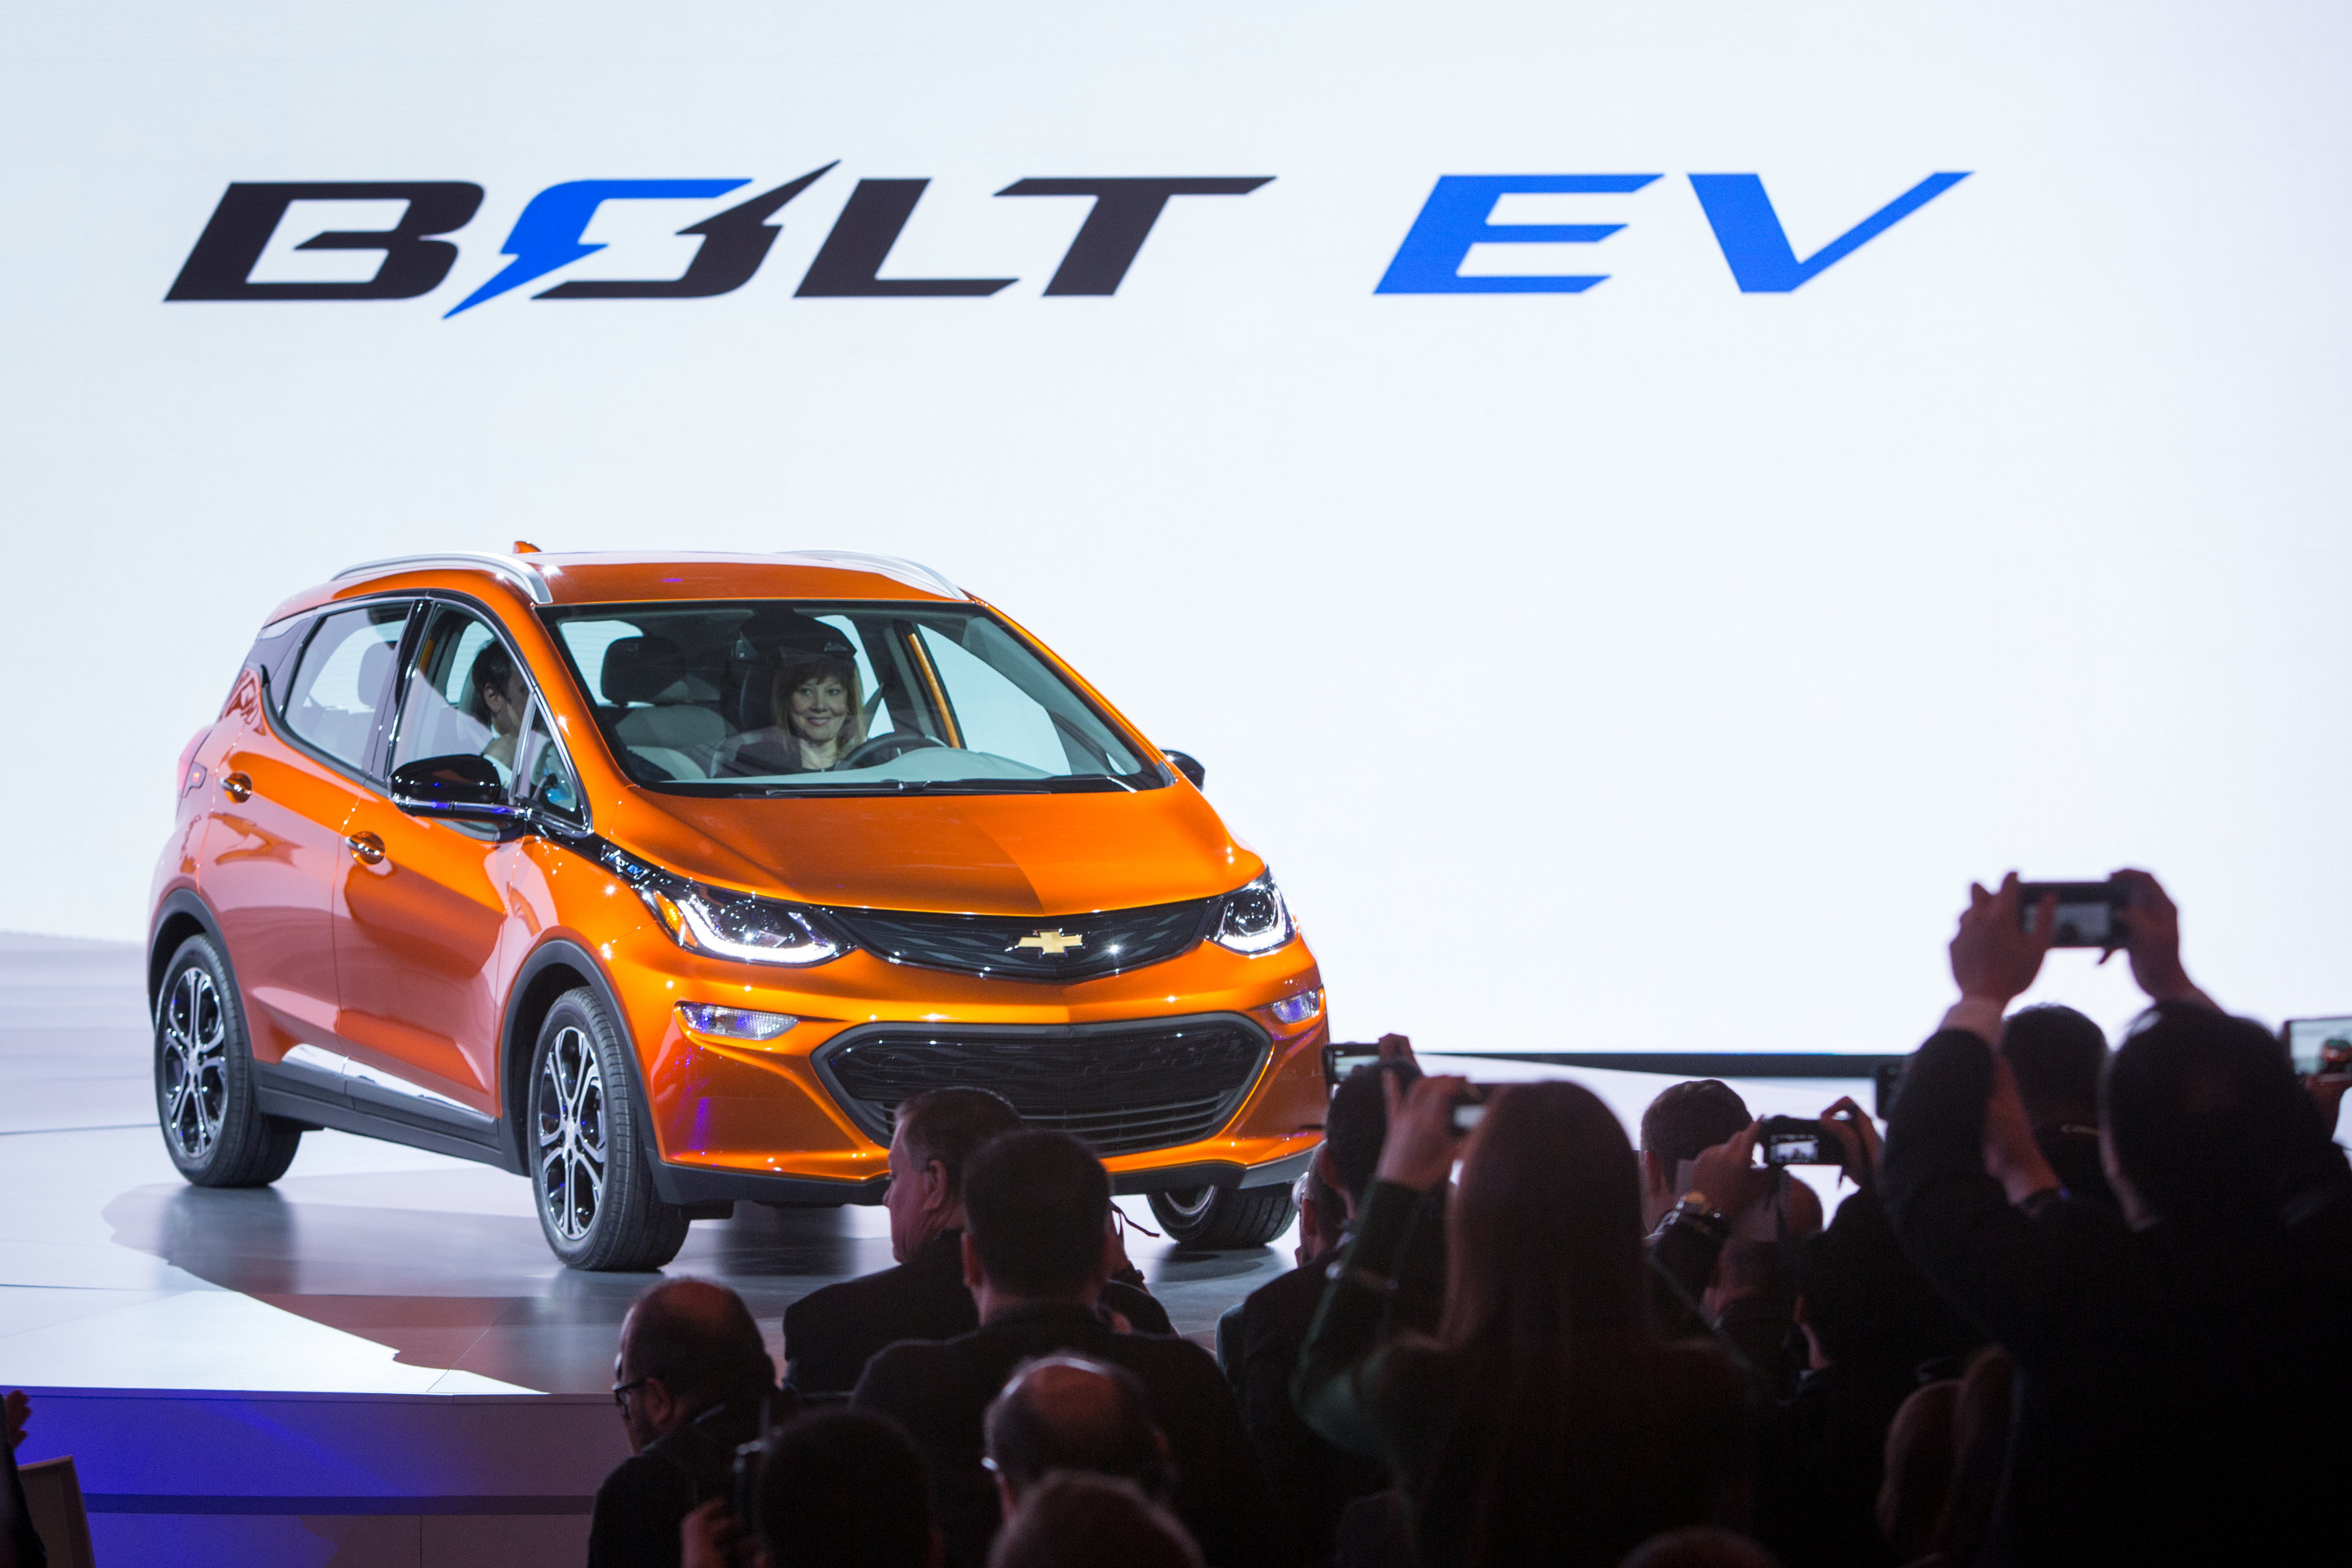 General Motors Chairman and CEO Mary Barra drives the 2017 Chevrolet Bolt EV onto the stage Monday, January 11, 2016 at the North American International Auto Show in Detroit, Michigan. GM Executive Vice President Product Development Mark Reuss rides in the passenger seat. The Bolt EV offers more than 200 miles of range on a full charge at a price below $30,000 after Federal tax credits. (Photo by Jeffrey Sauger for Chevrolet)